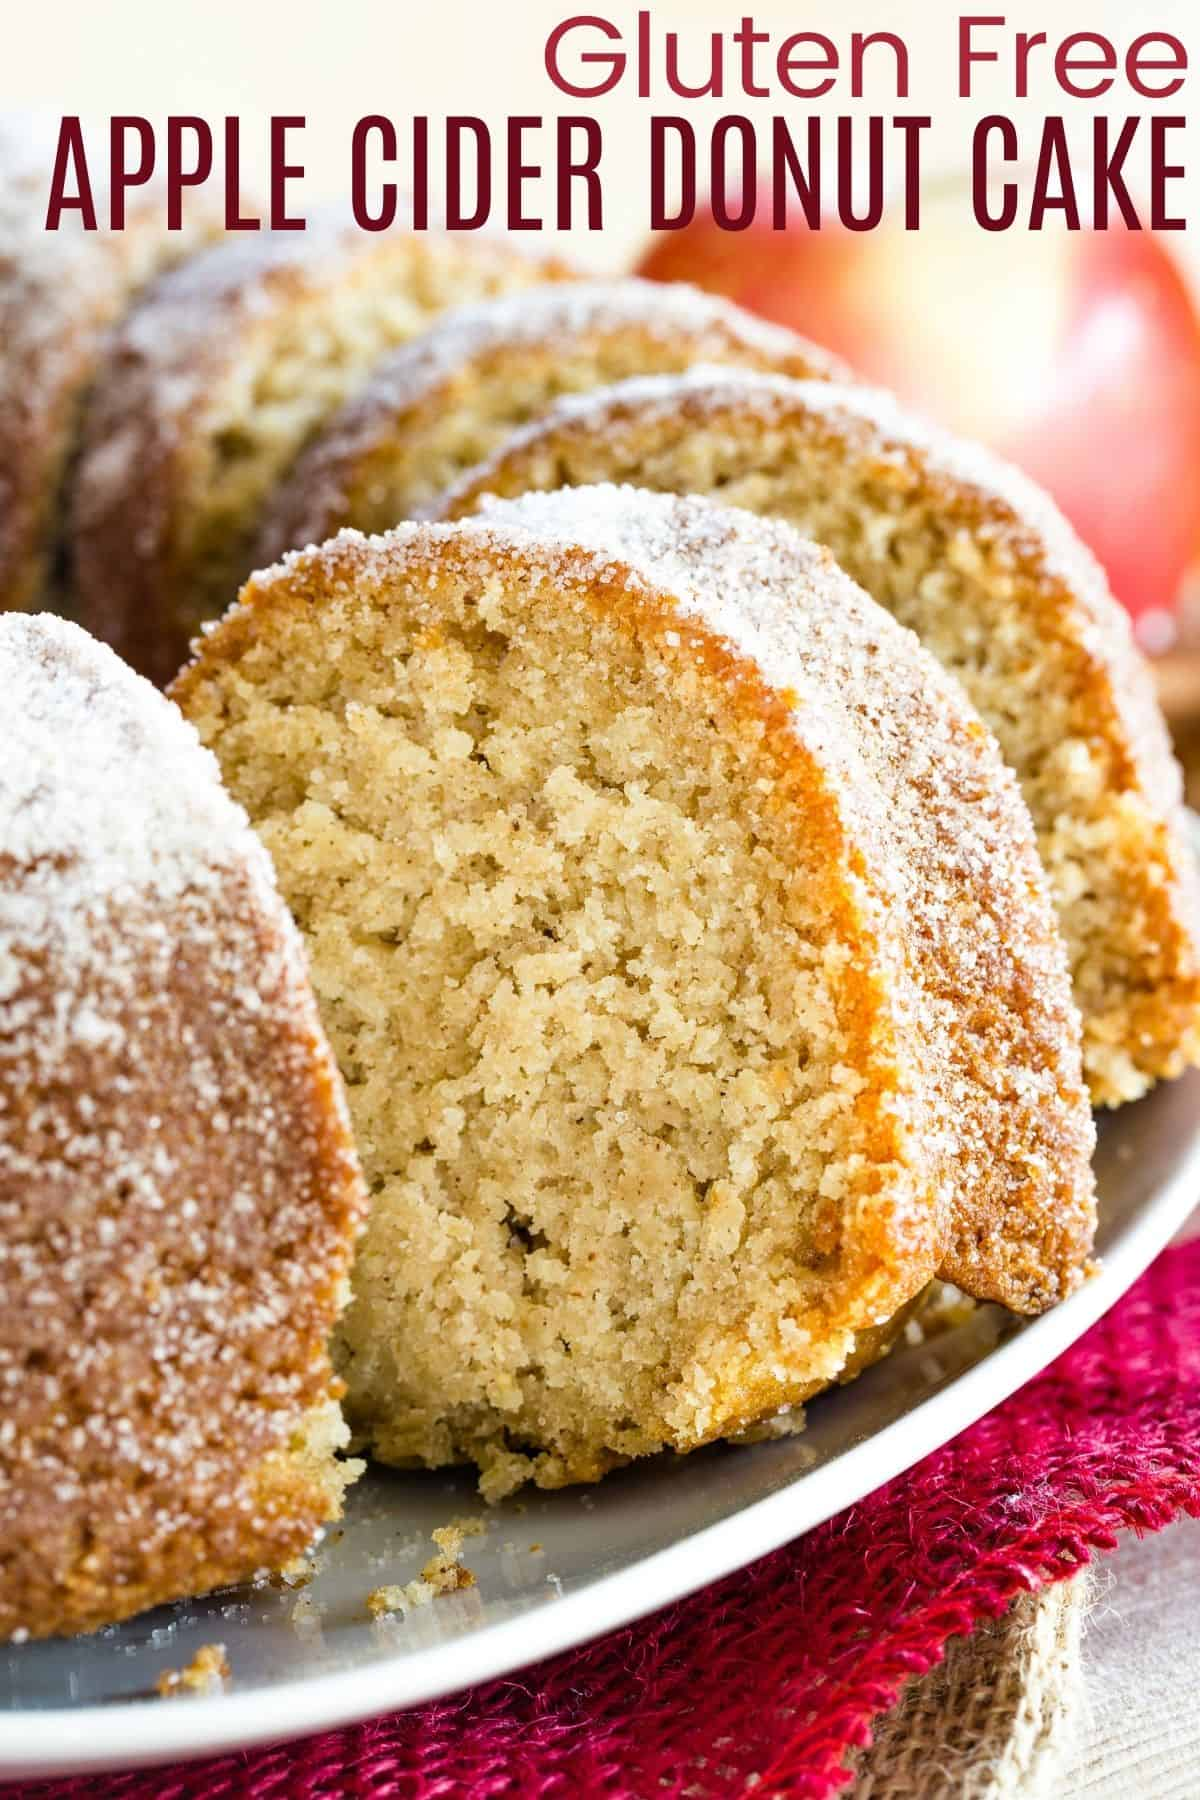 Gluten Free Apple Cider Donut Cake Recipe